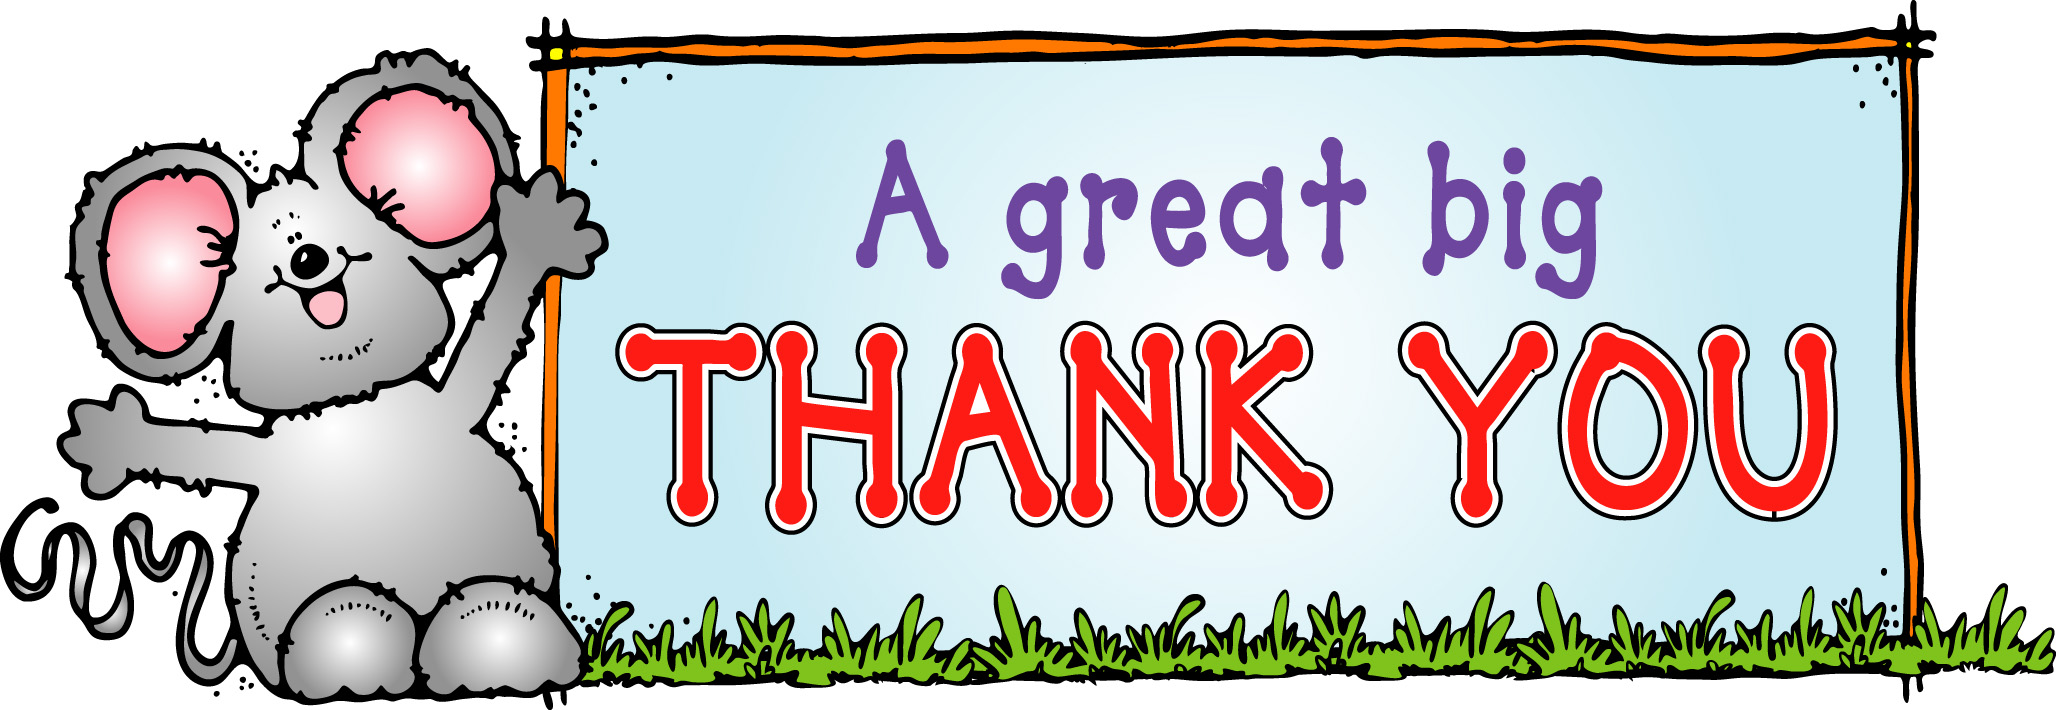 2056x710 Funny Thank You Images Free Clipart Free Clip Art Images Image 7 4